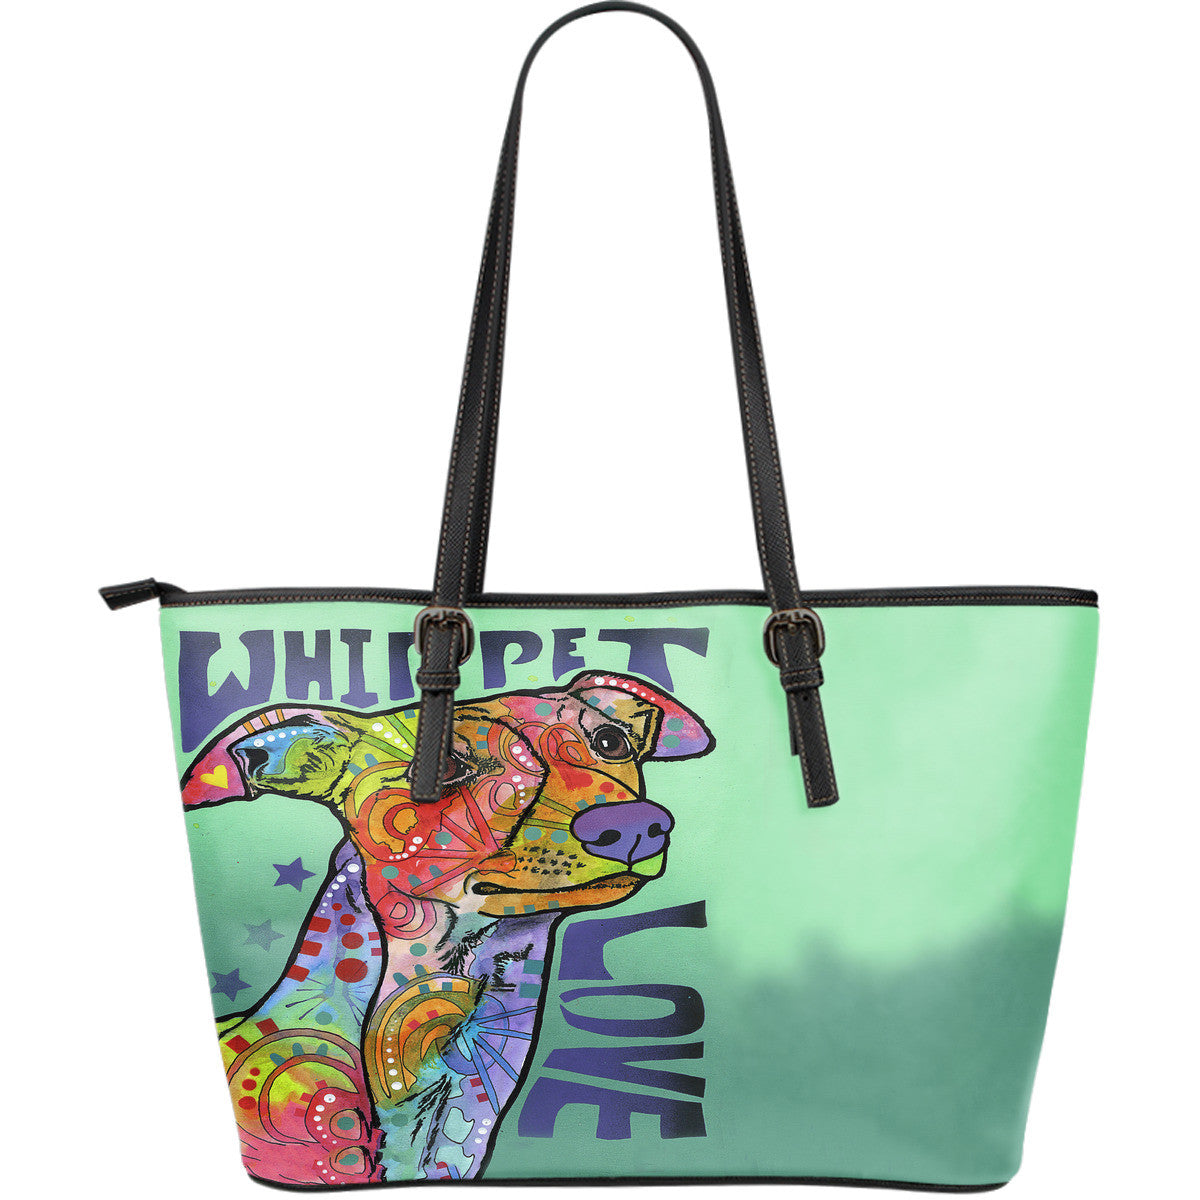 Whippet Love Leather Tote Bags (Large)